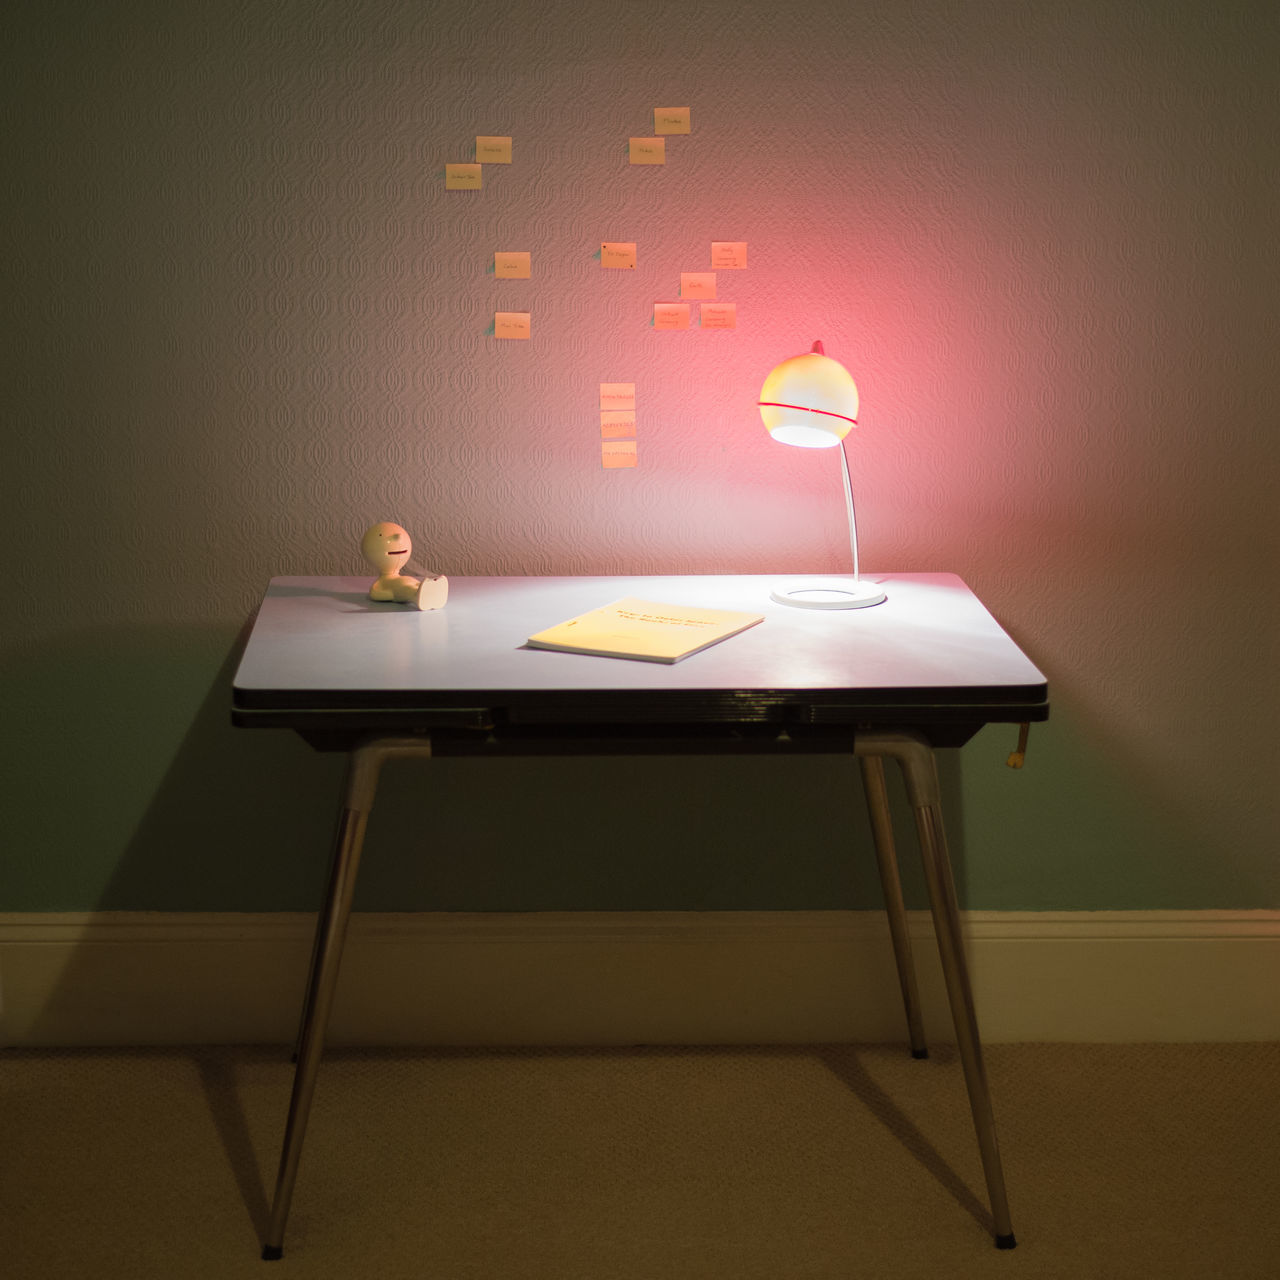 Beautiful stock photos of table, Adhesive Note, Color Image, Desk, Illuminated